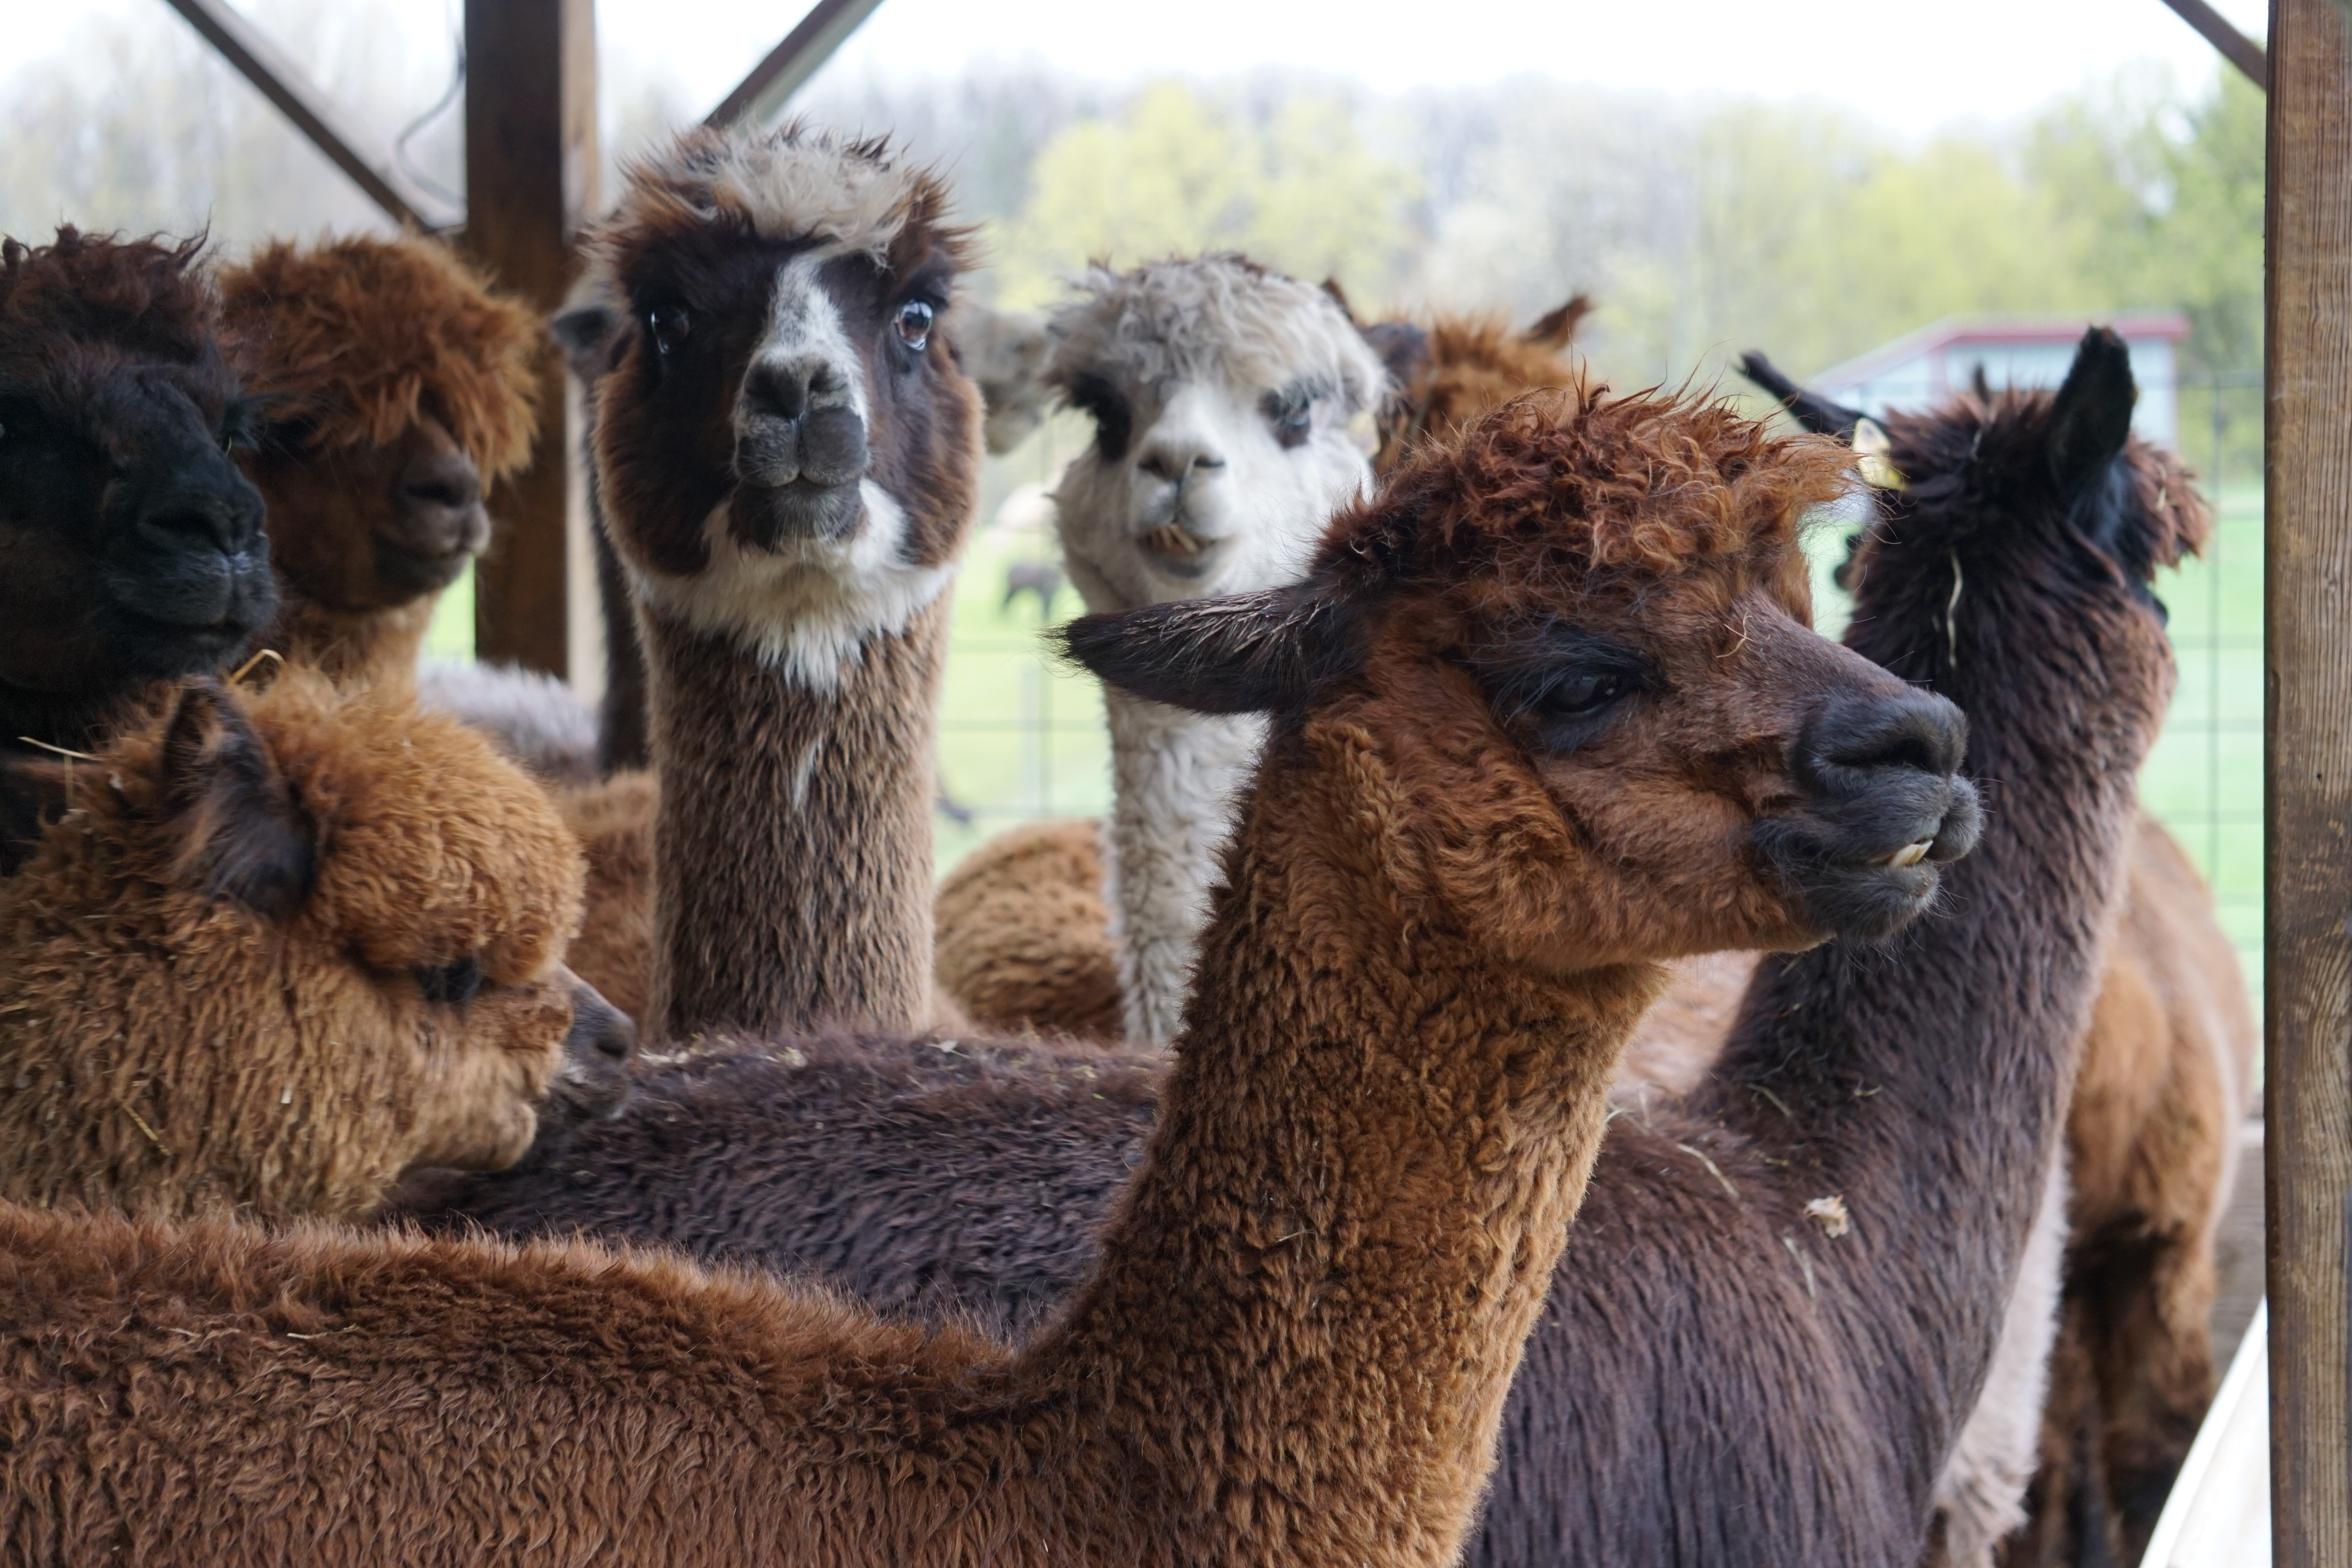 Farm Tour: 4 or less in your group